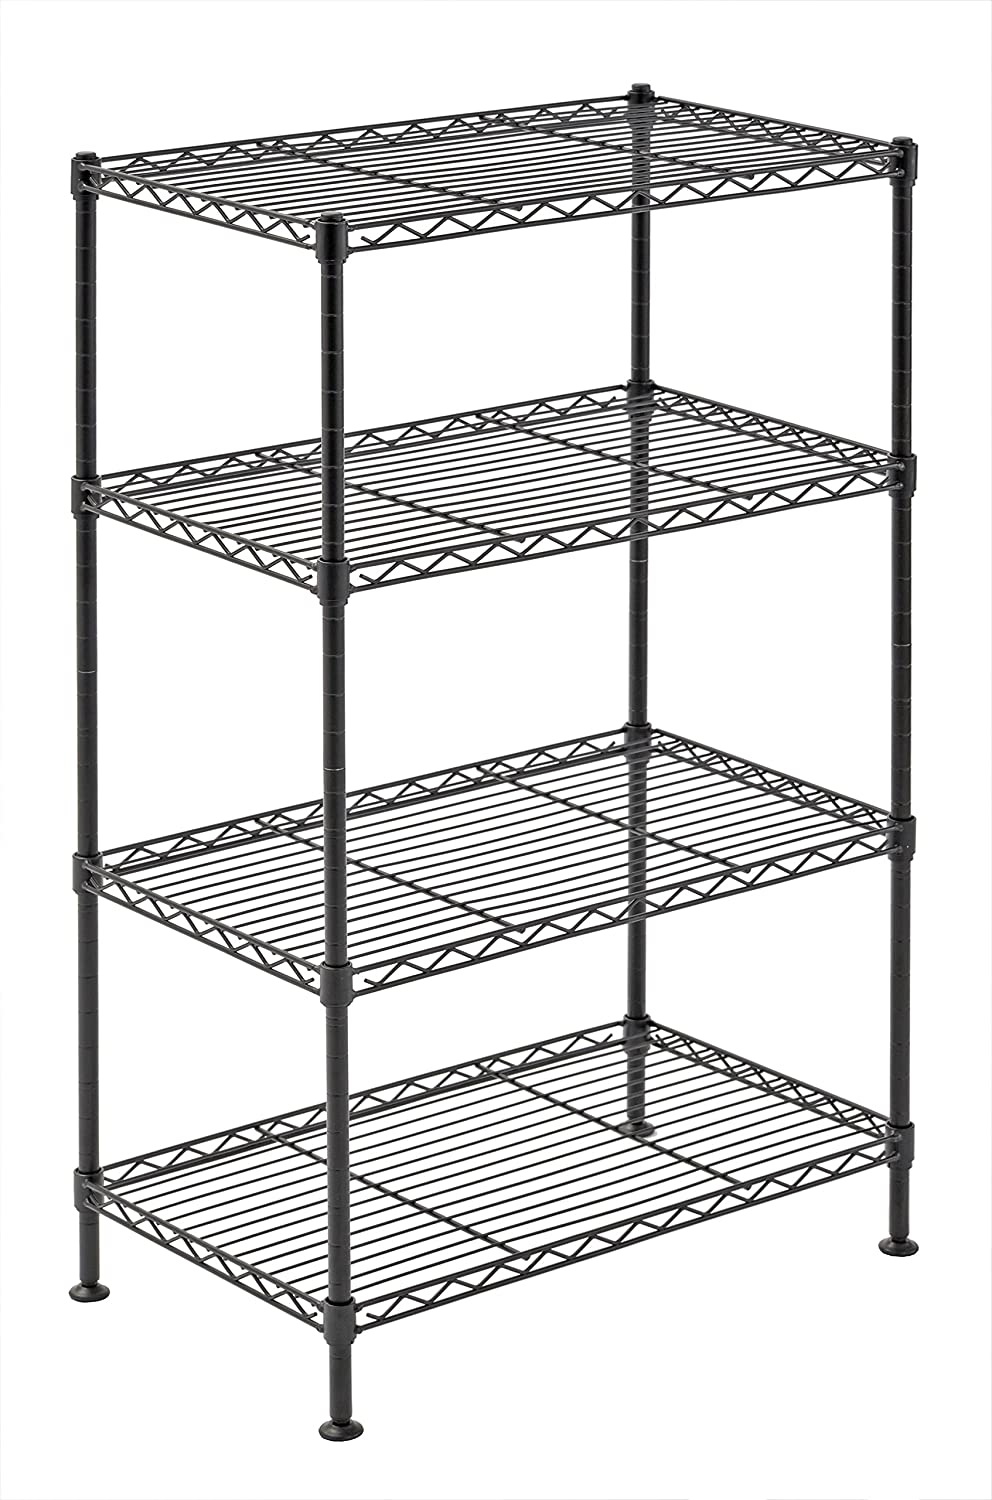 Sandusky Lee WS201232-C Industrial Welded Wire Shelving, 20-Inch Width x 32-Inch Height x 12-Inch Depth, Chrome